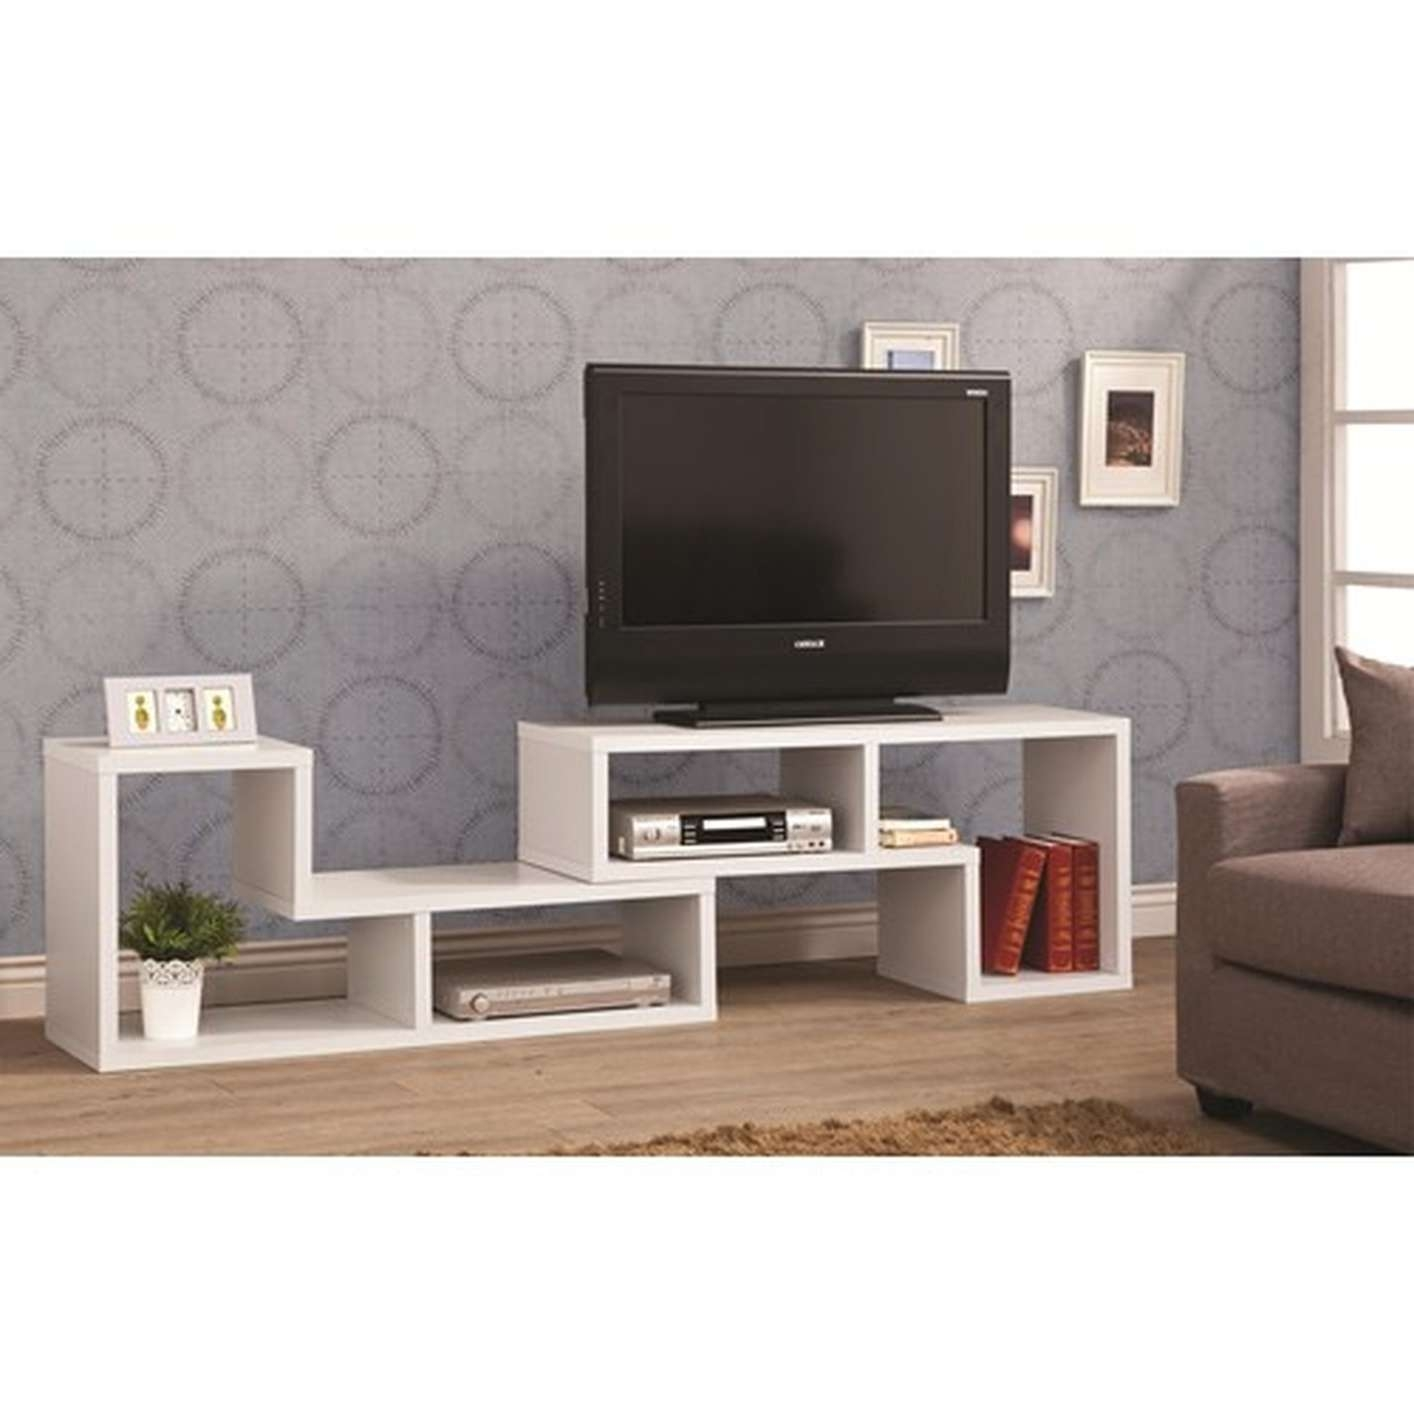 White Wood Tv Stand – Steal A Sofa Furniture Outlet Los Angeles Ca For White And Wood Tv Stands (View 10 of 15)